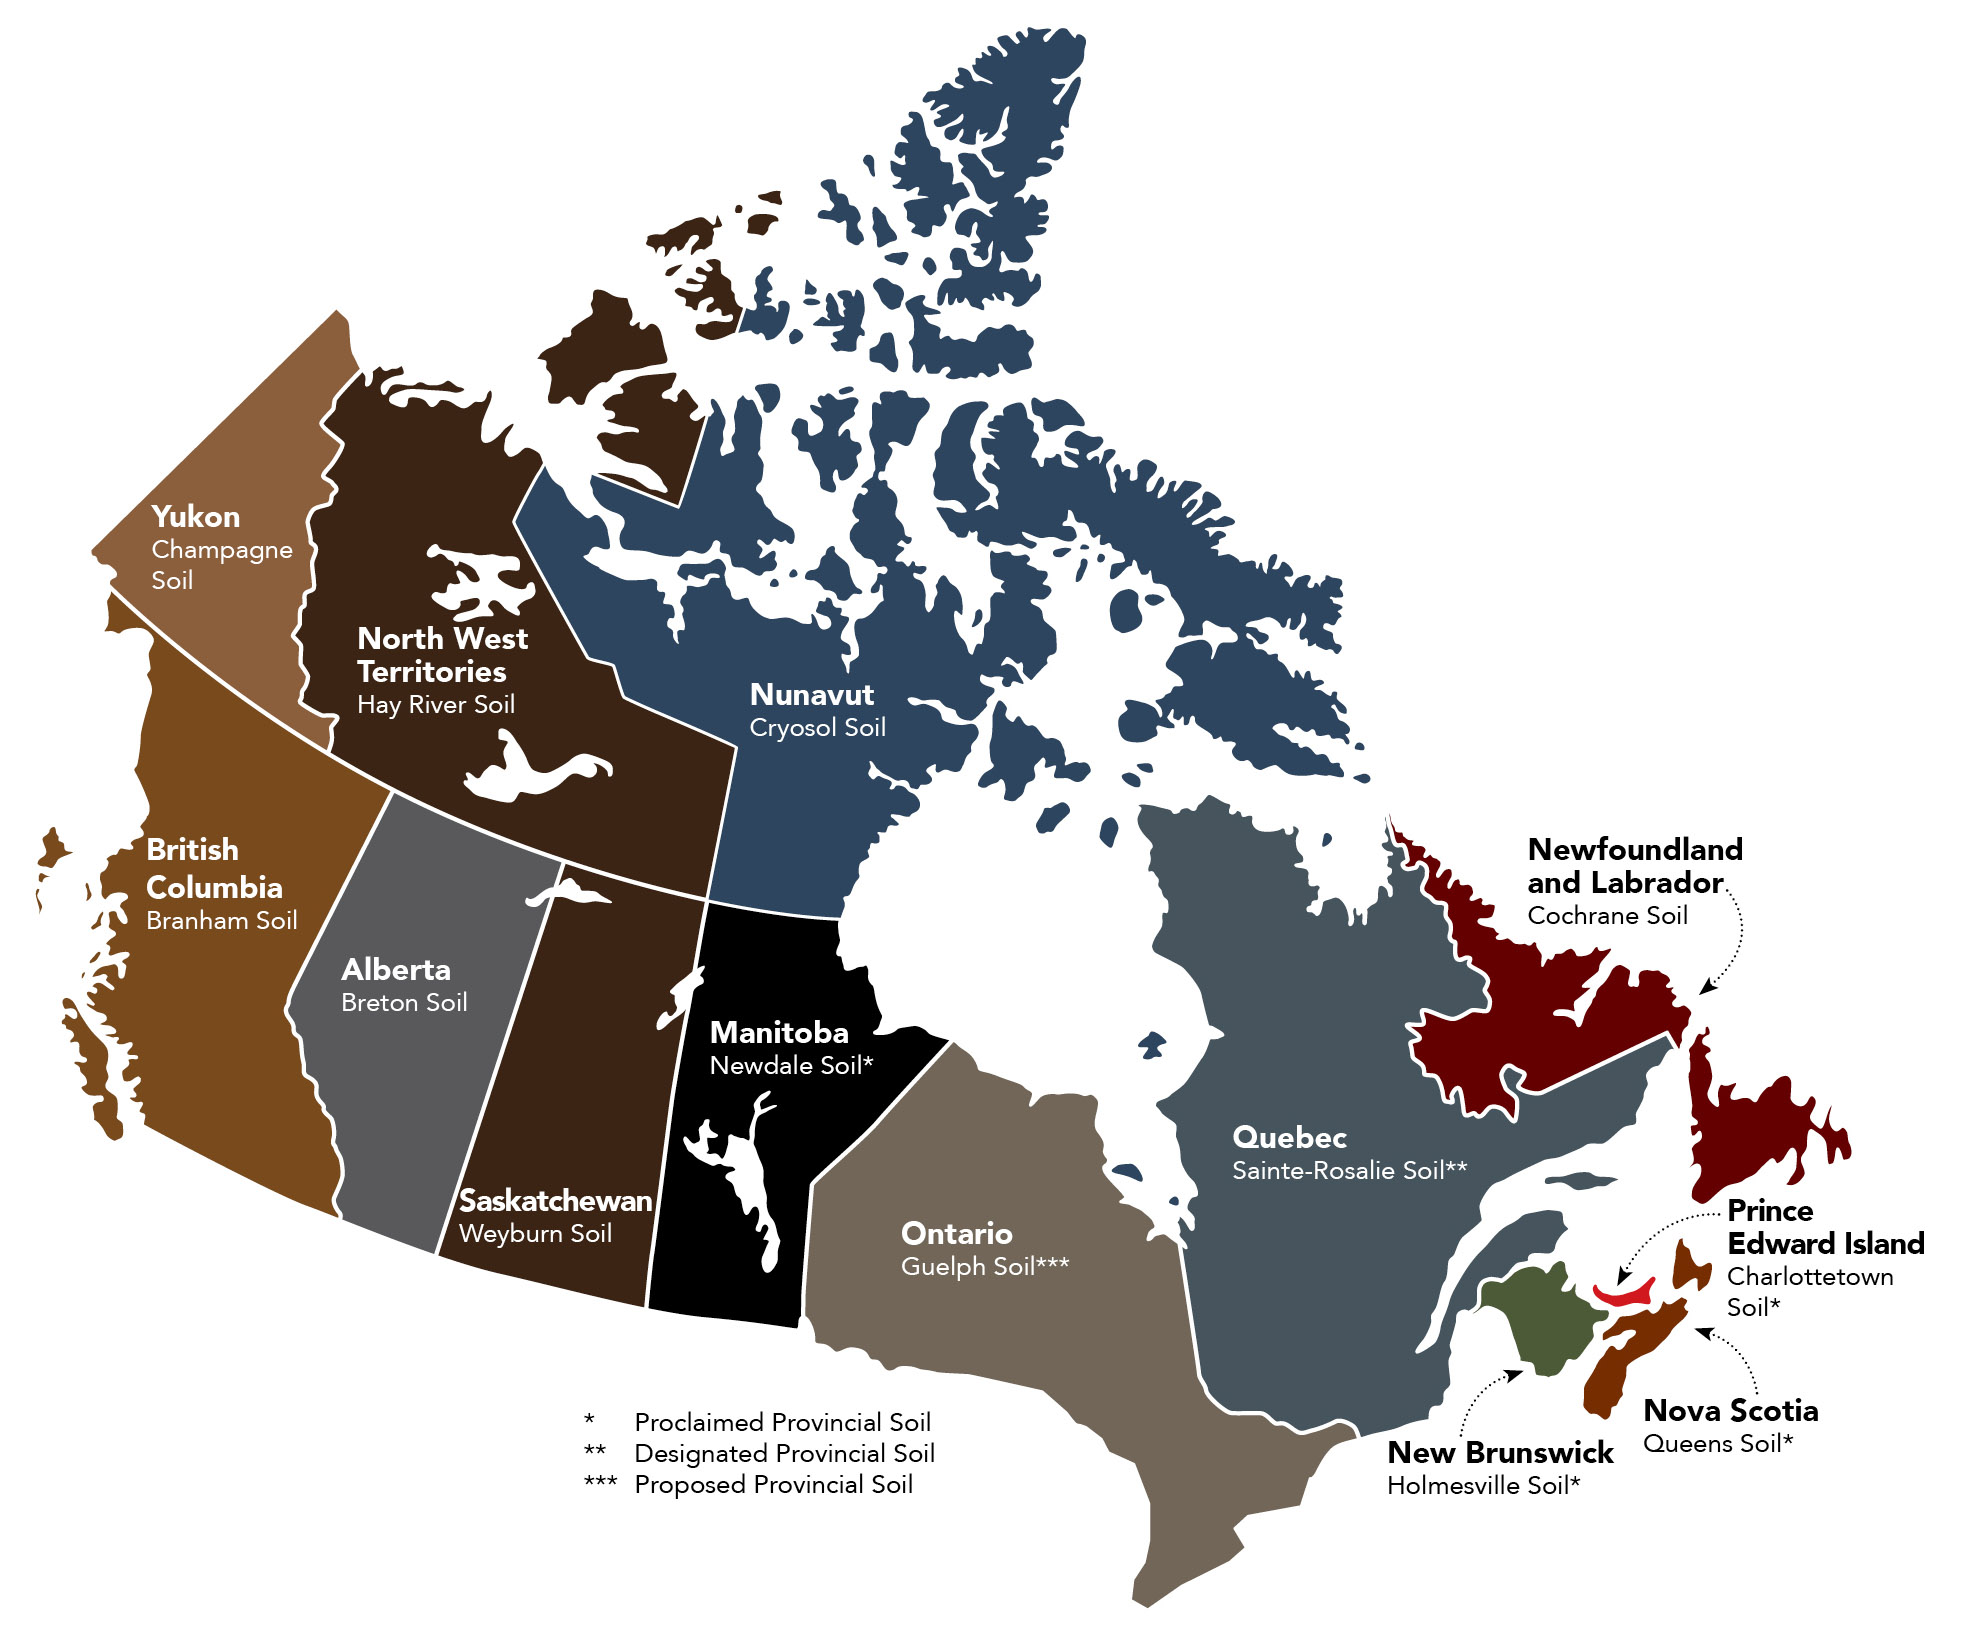 A map of Canada shows the significant agricultural soils by province/territory.